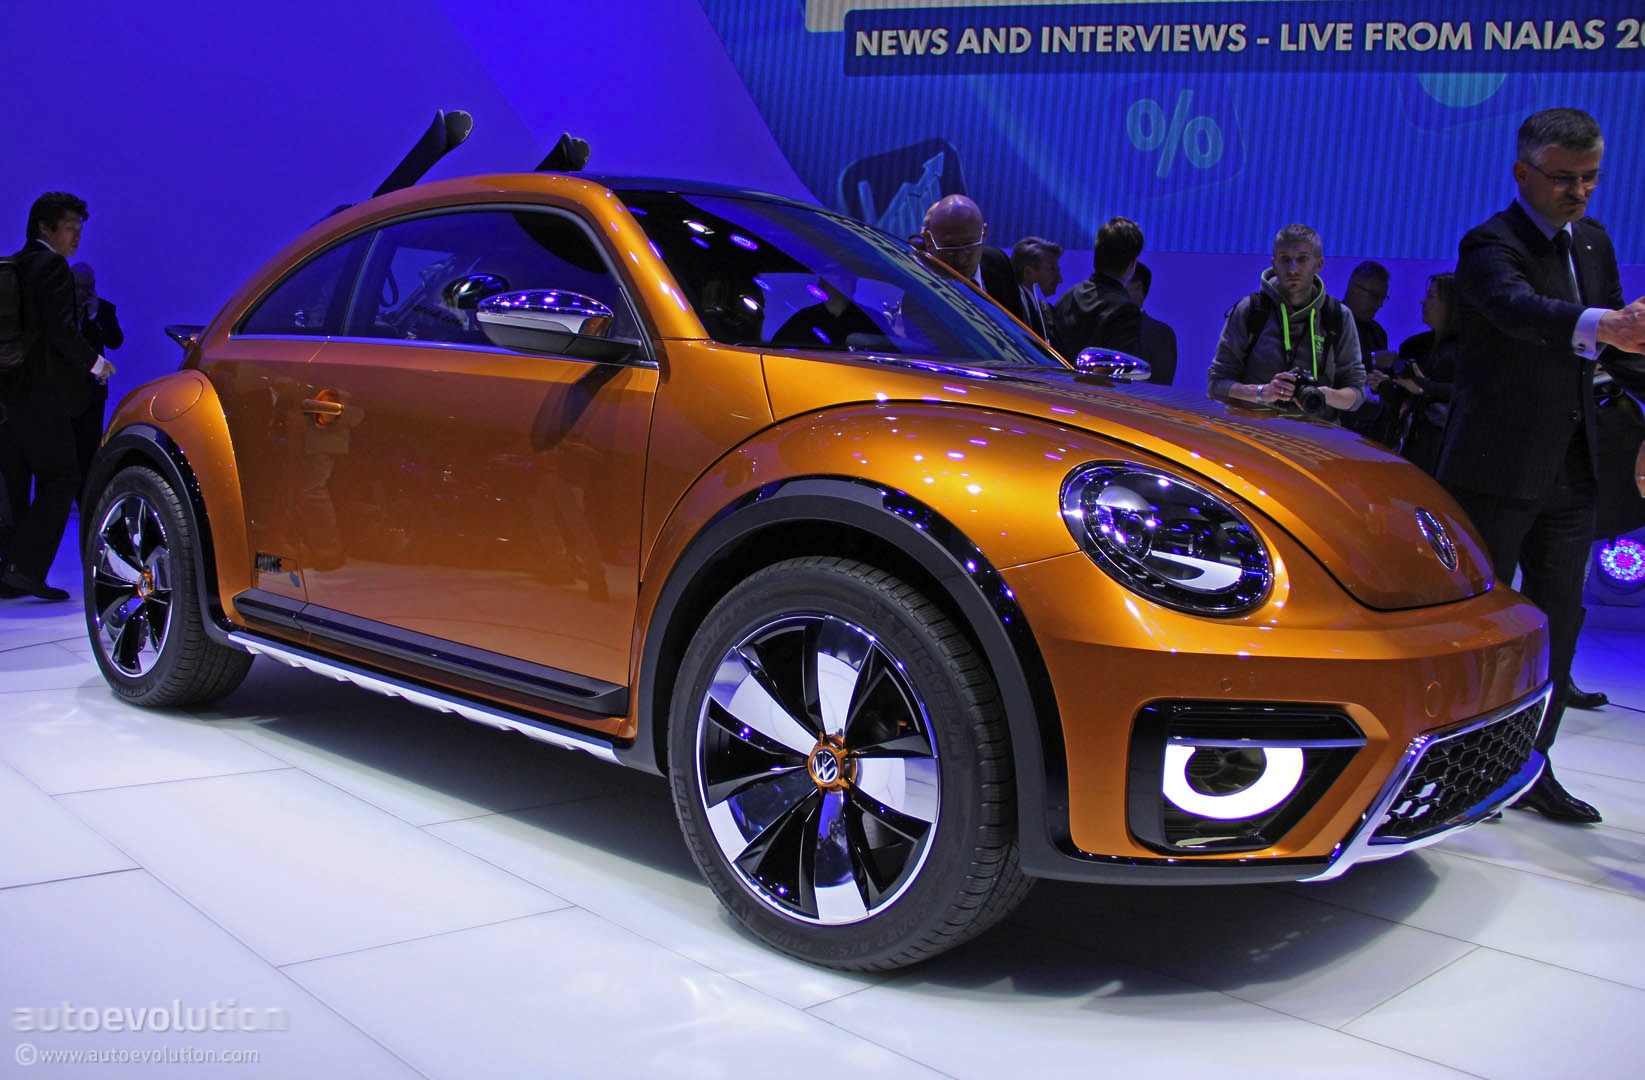 VW Beetle Dune Concept Is an Alltrack Bug [Live Photos] - autoevolution